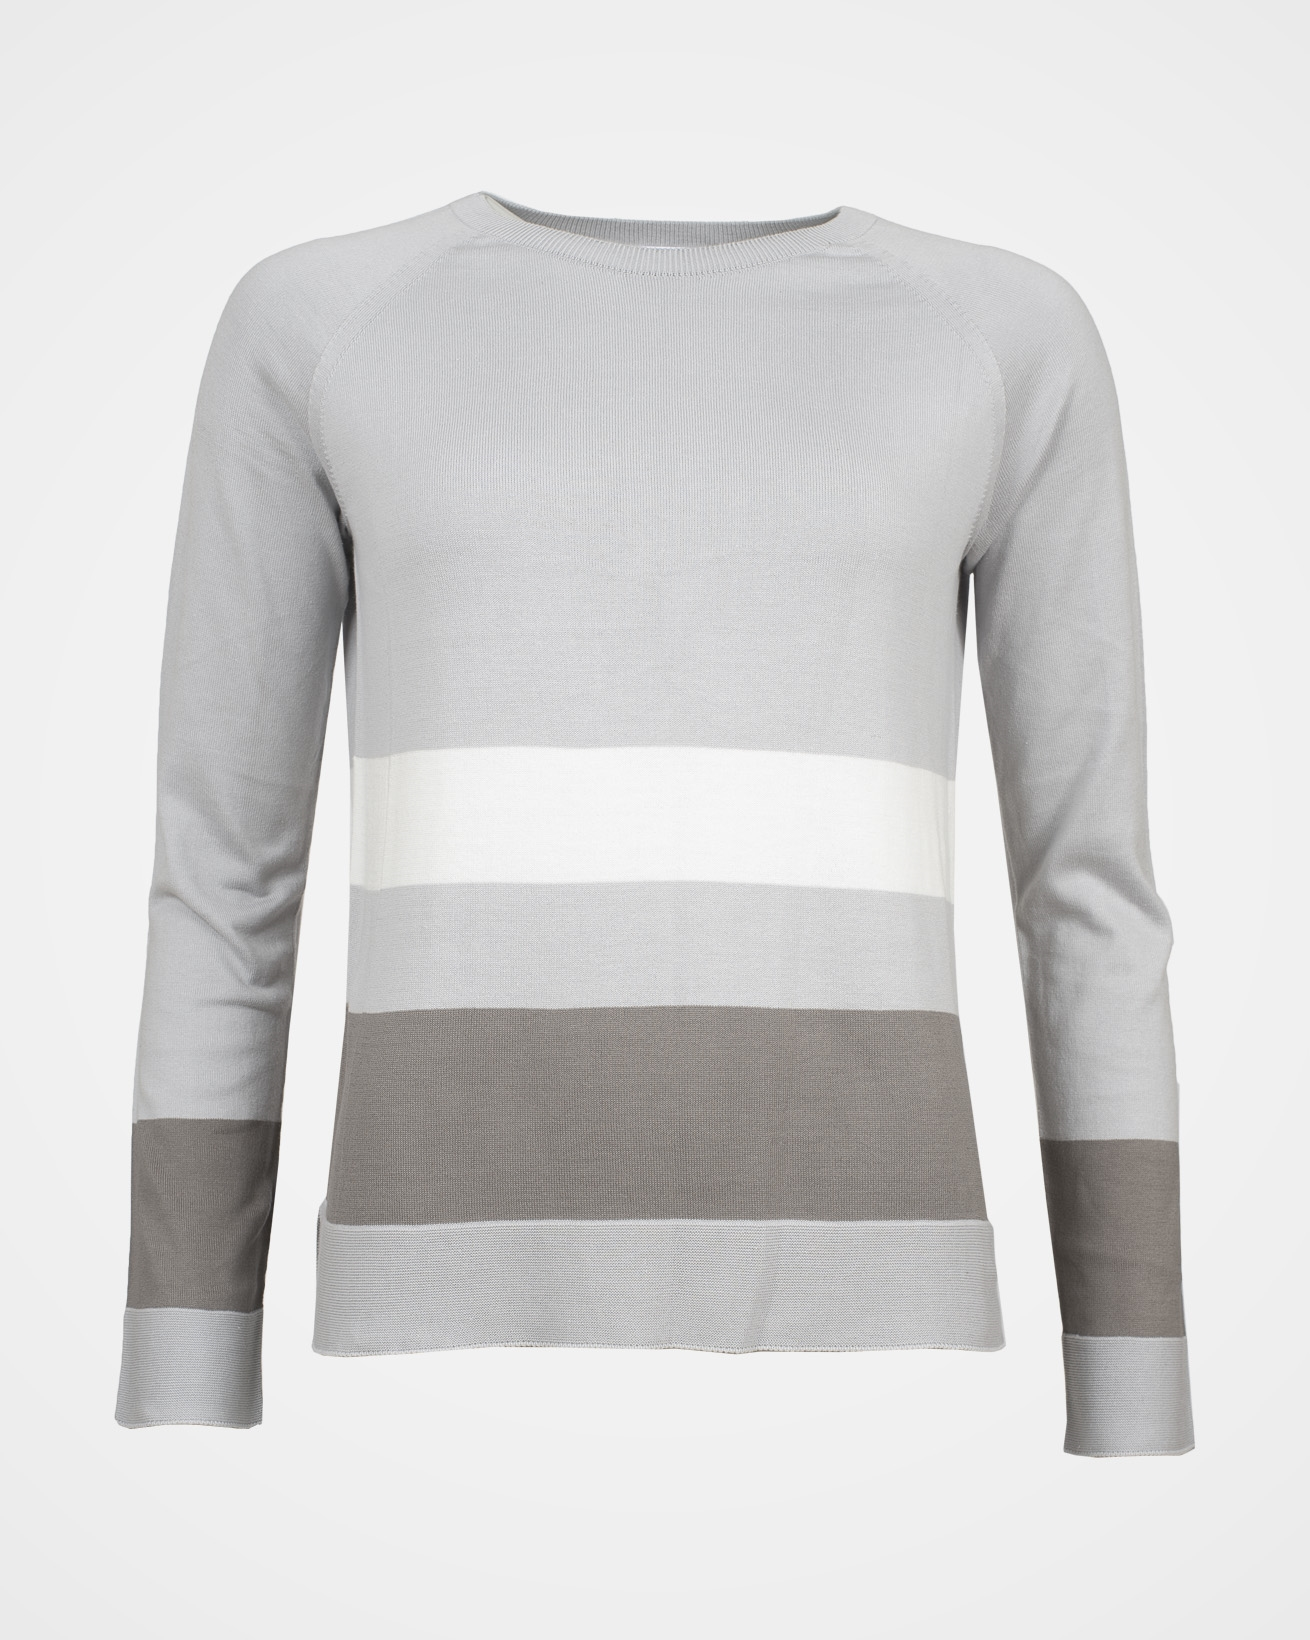 7816_eco-cotton-crew-neck_mineral-colourblock_front_rev.jpg